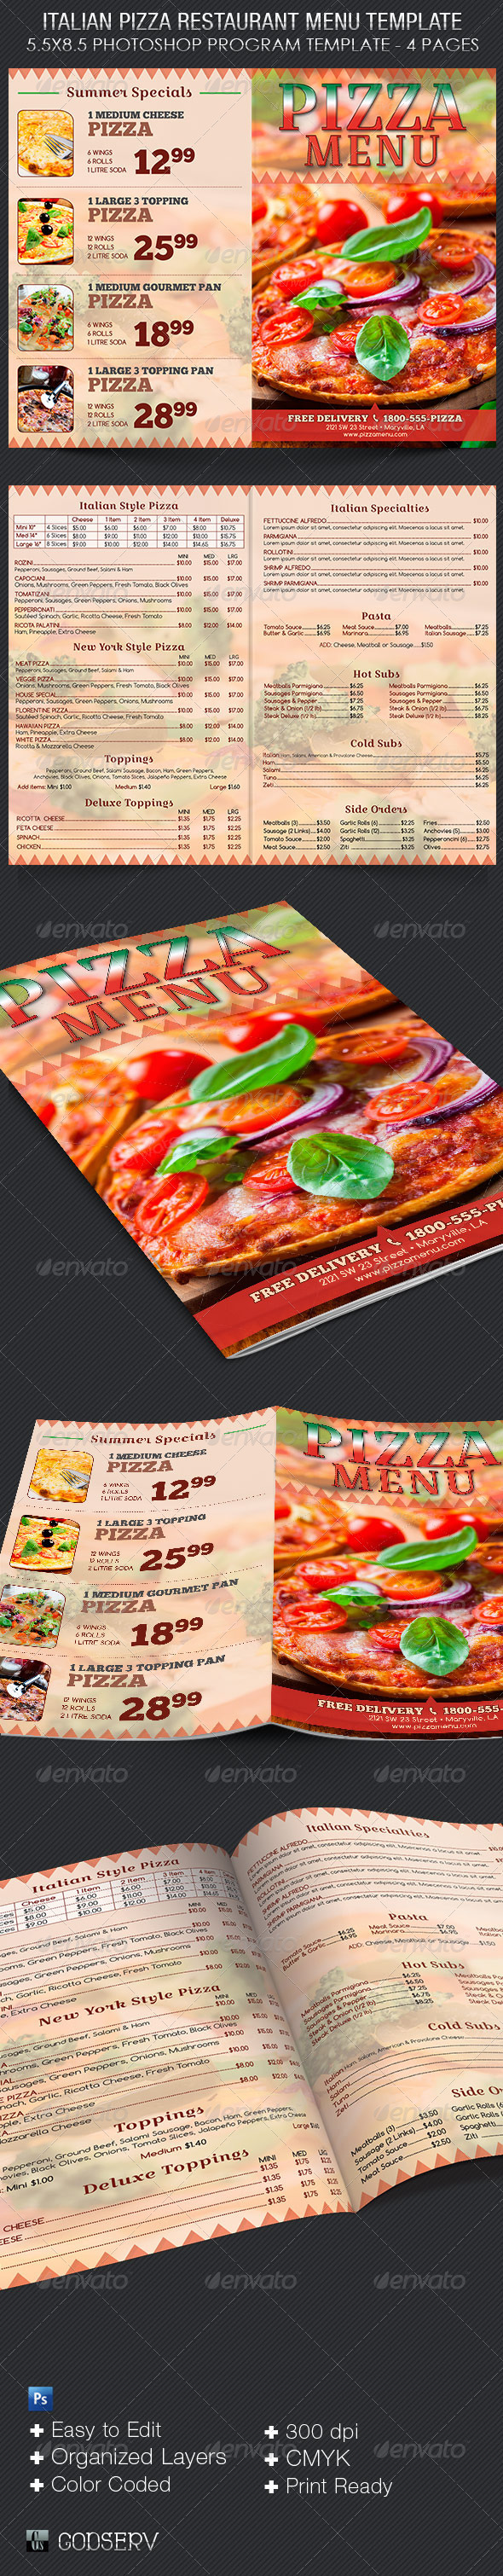 GraphicRiver Italian Pizza Restaurant Menu Template 8069936